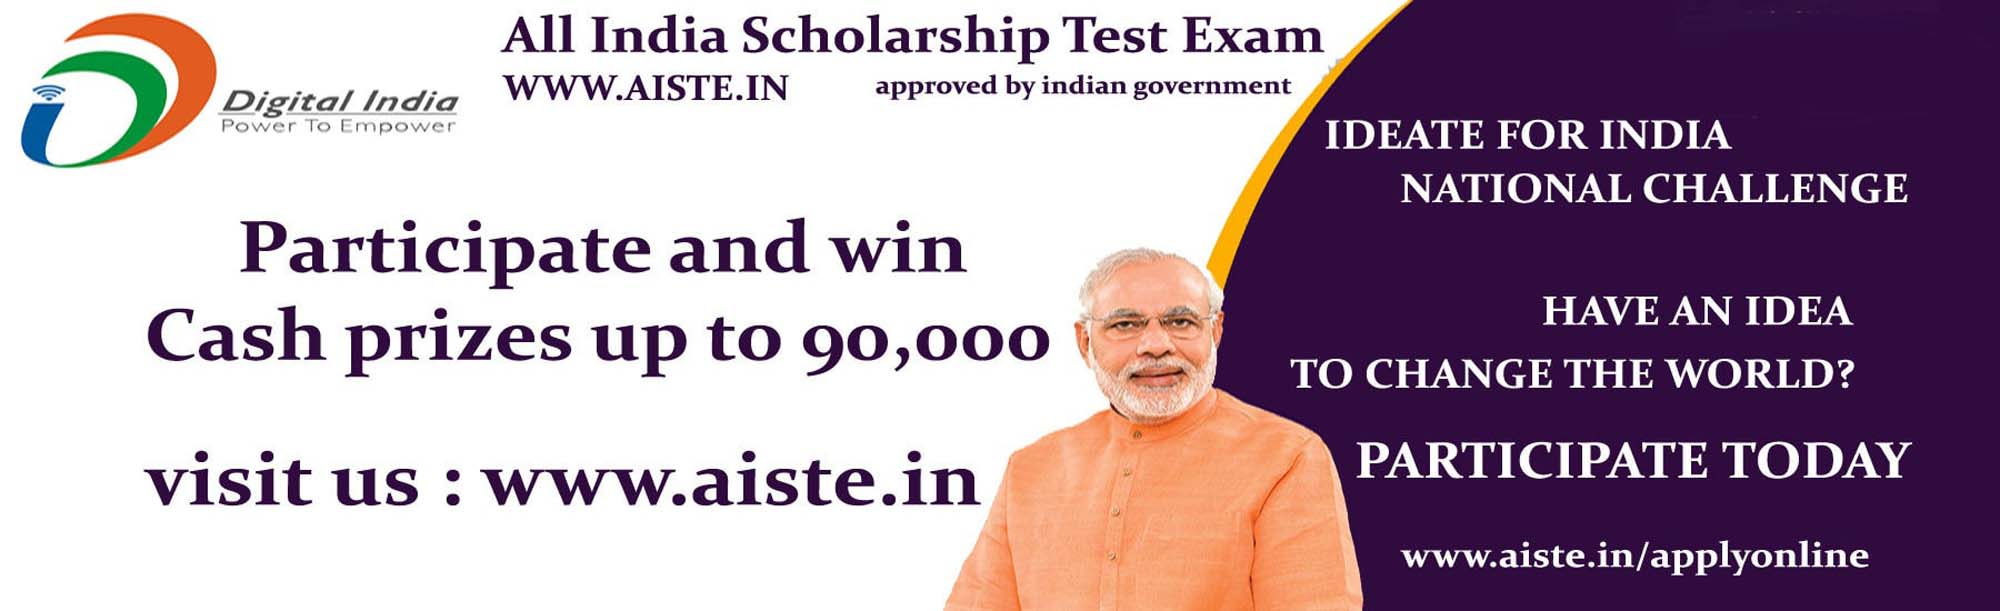 PARTICIPATE TODAY SCHOLARSHIP